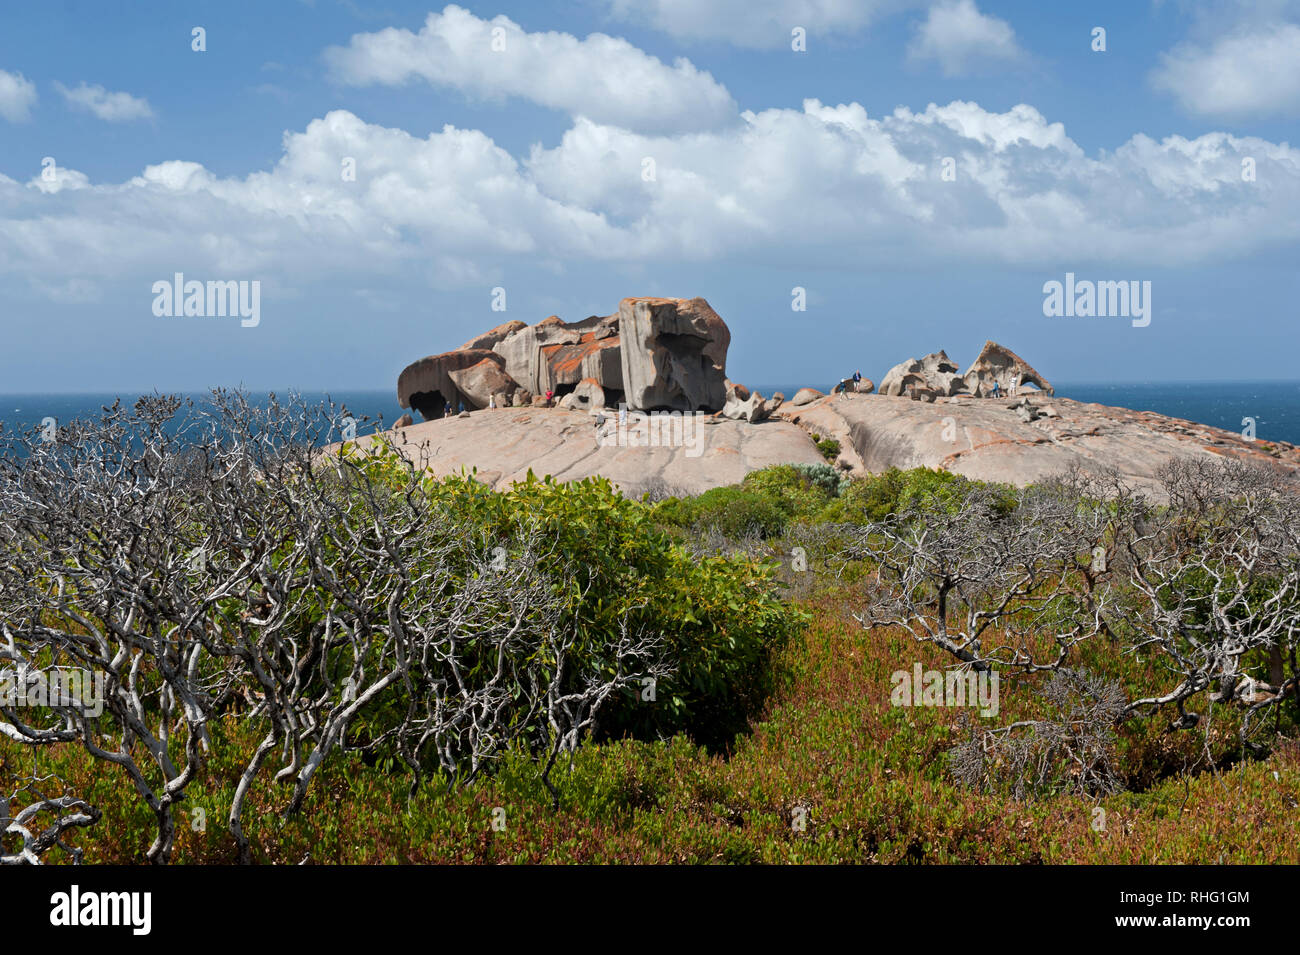 General view of Remarkable Rocks, Kangaroo Island, South Australia, Australia - Stock Image